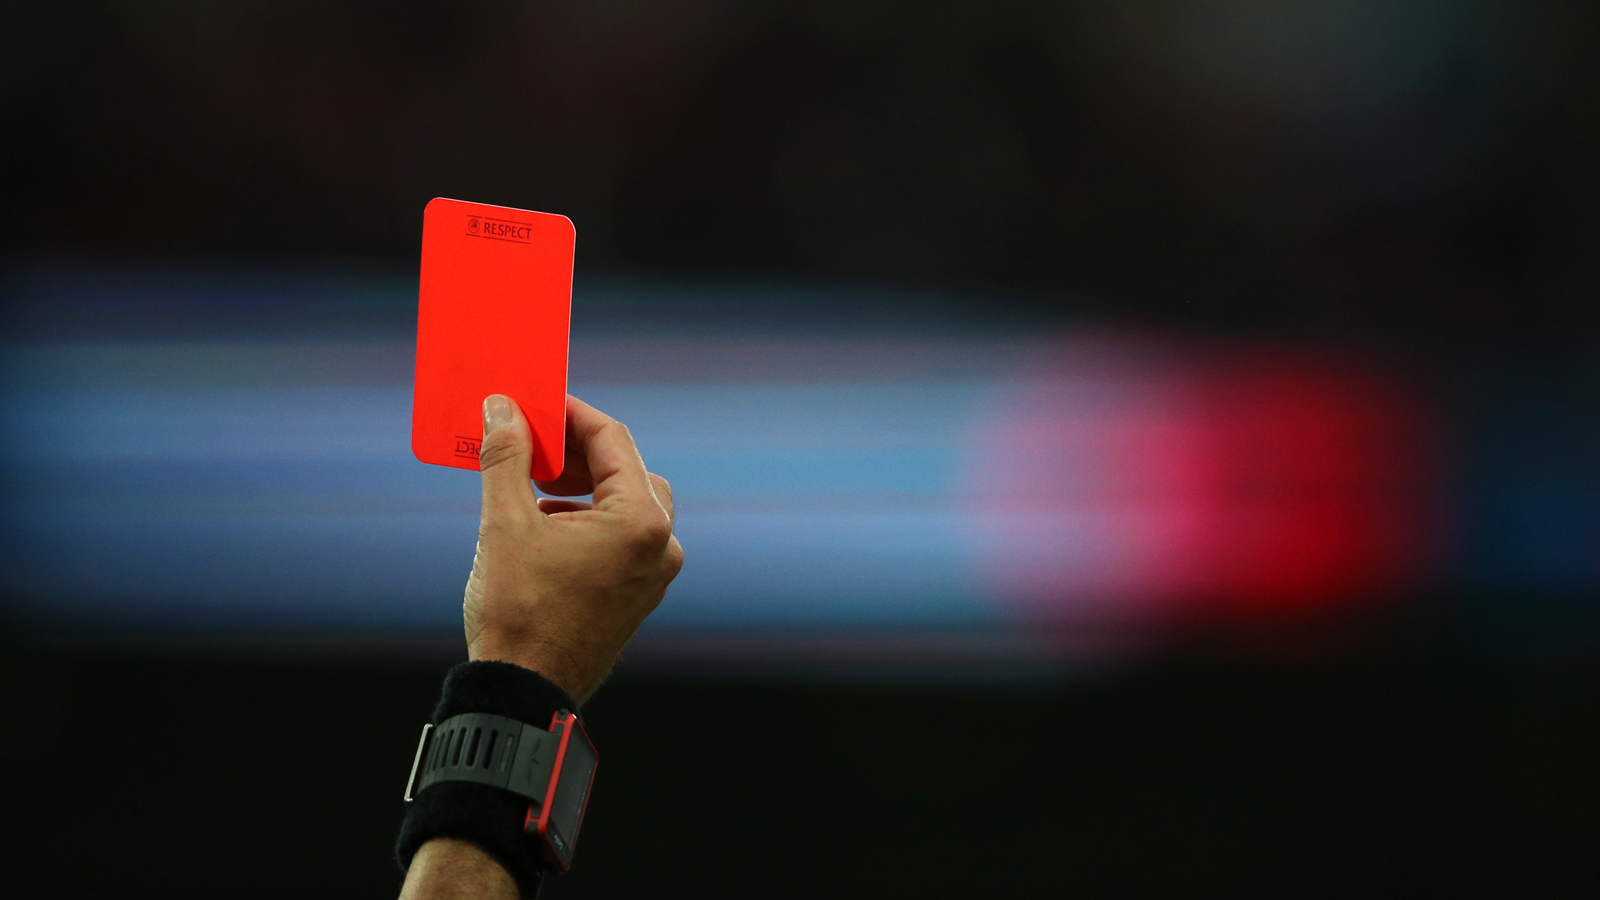 Red card football